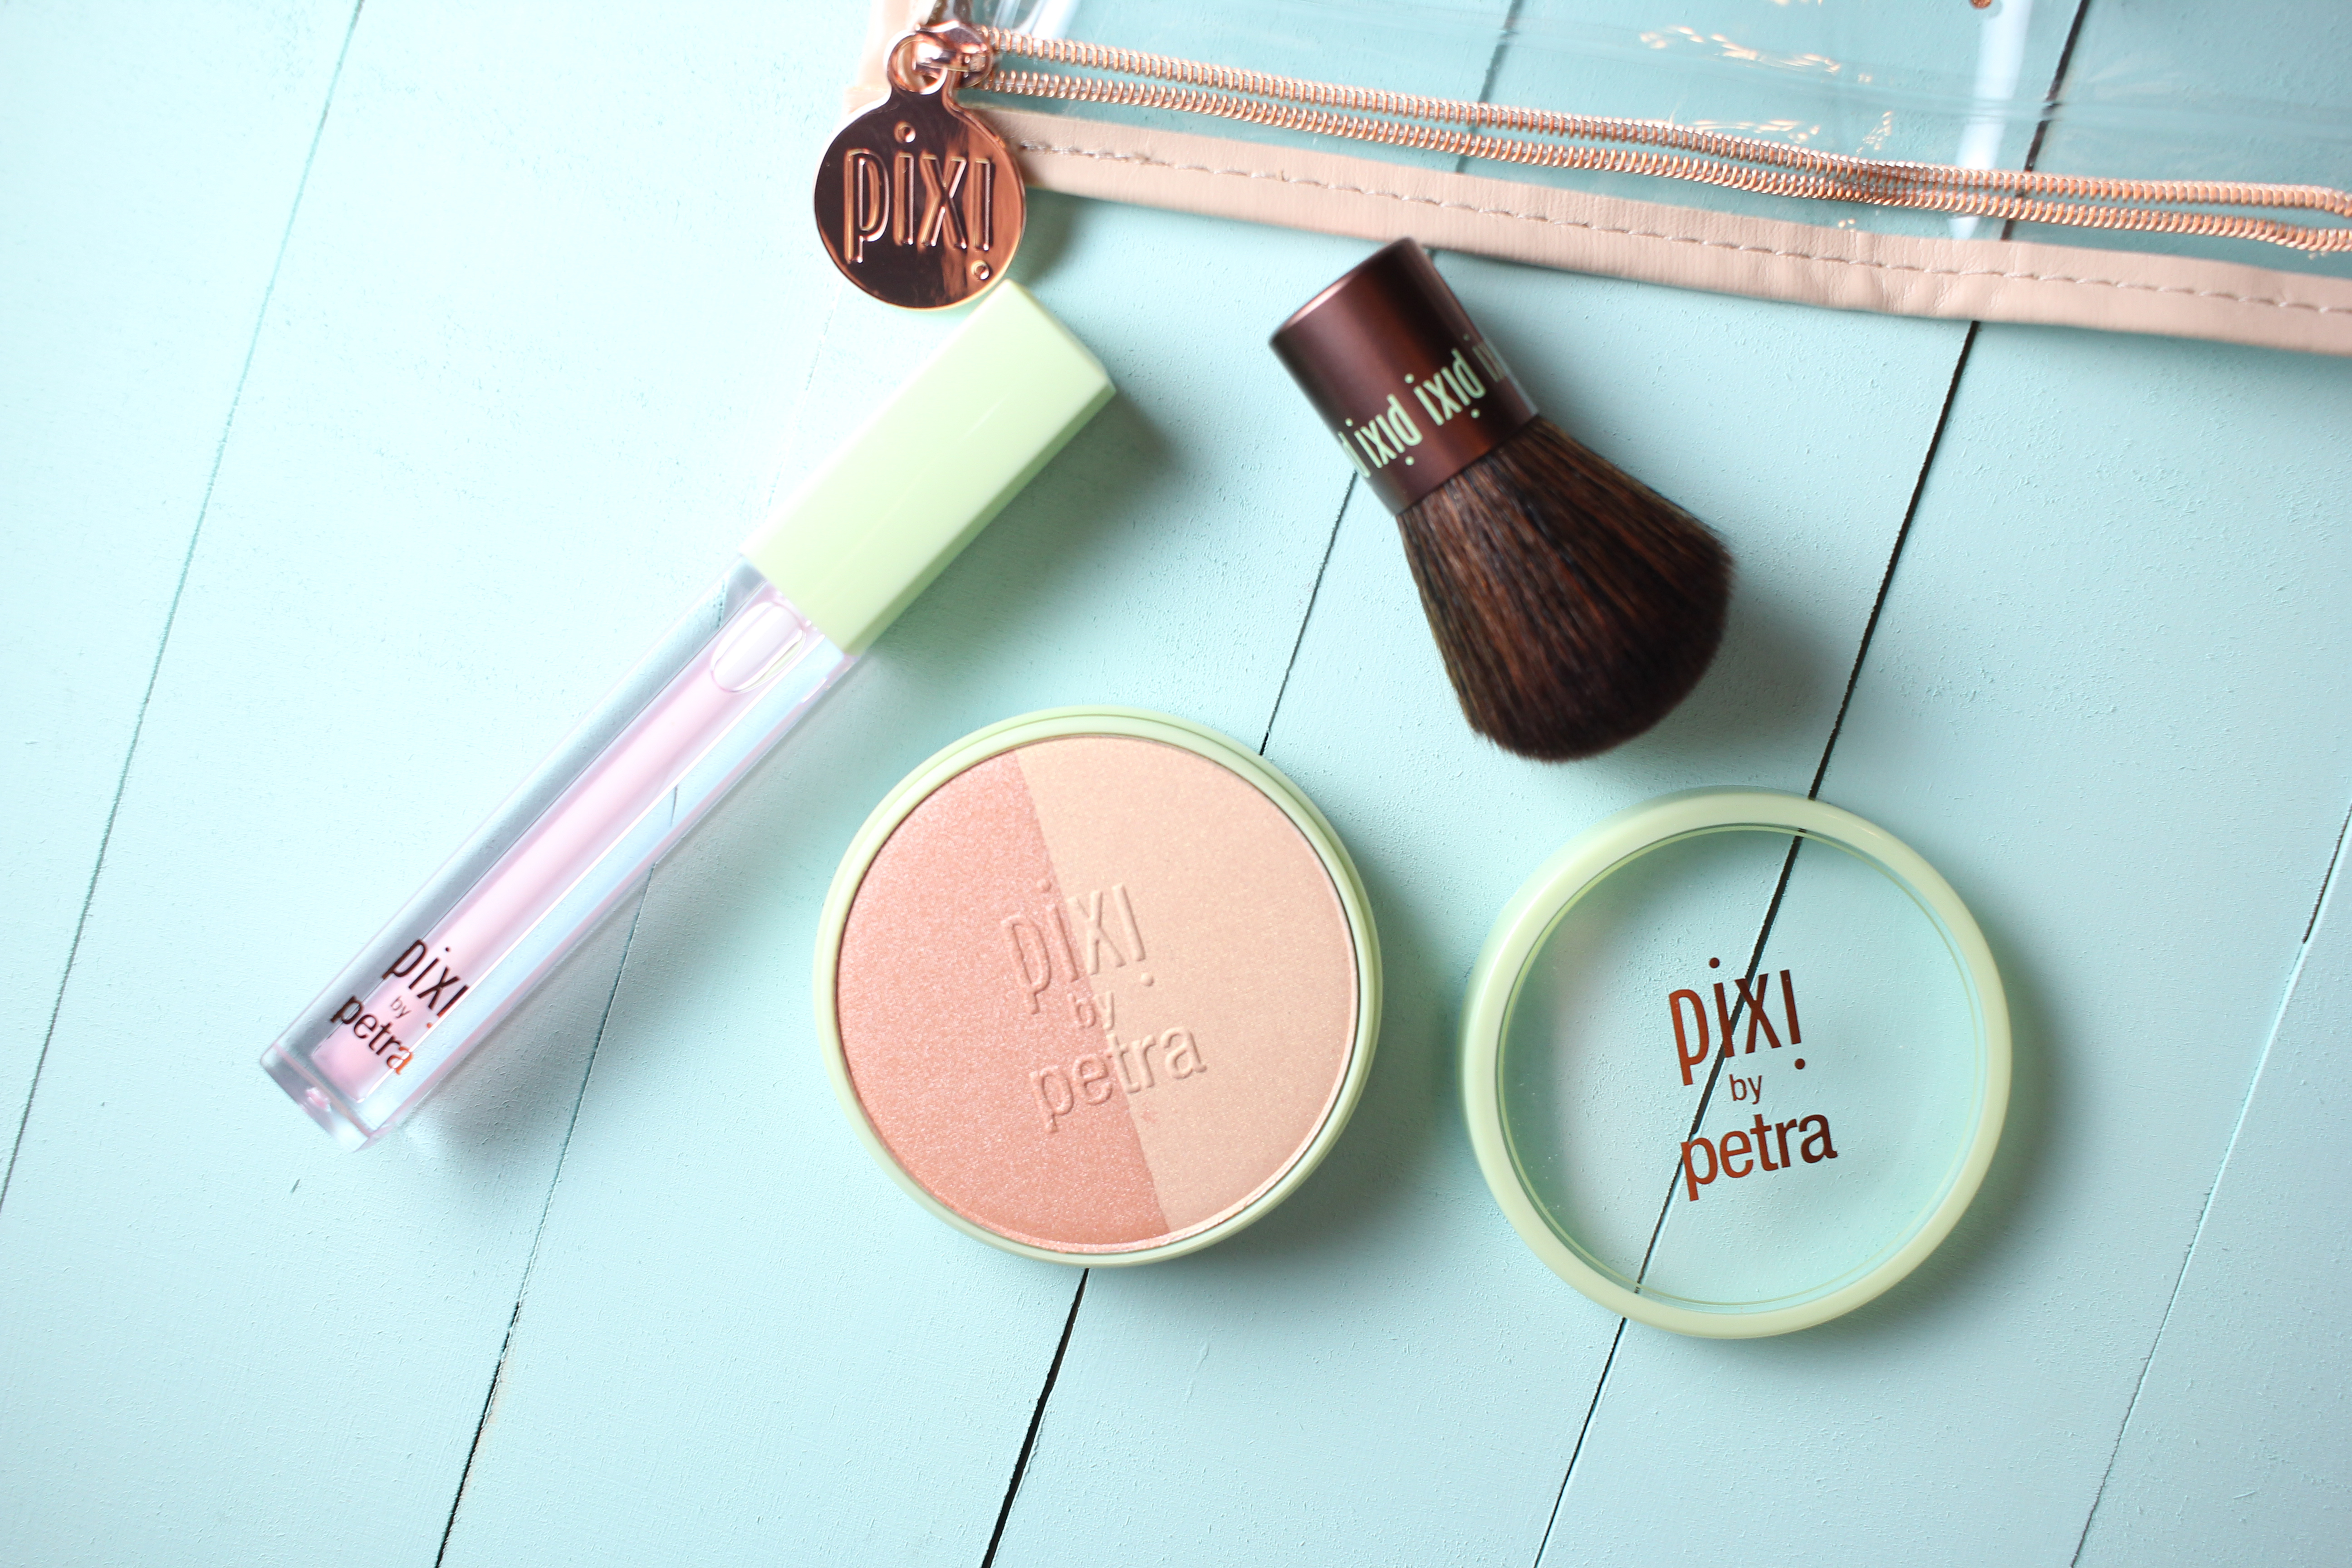 peach-honey-beauty-blush-duo-pixi